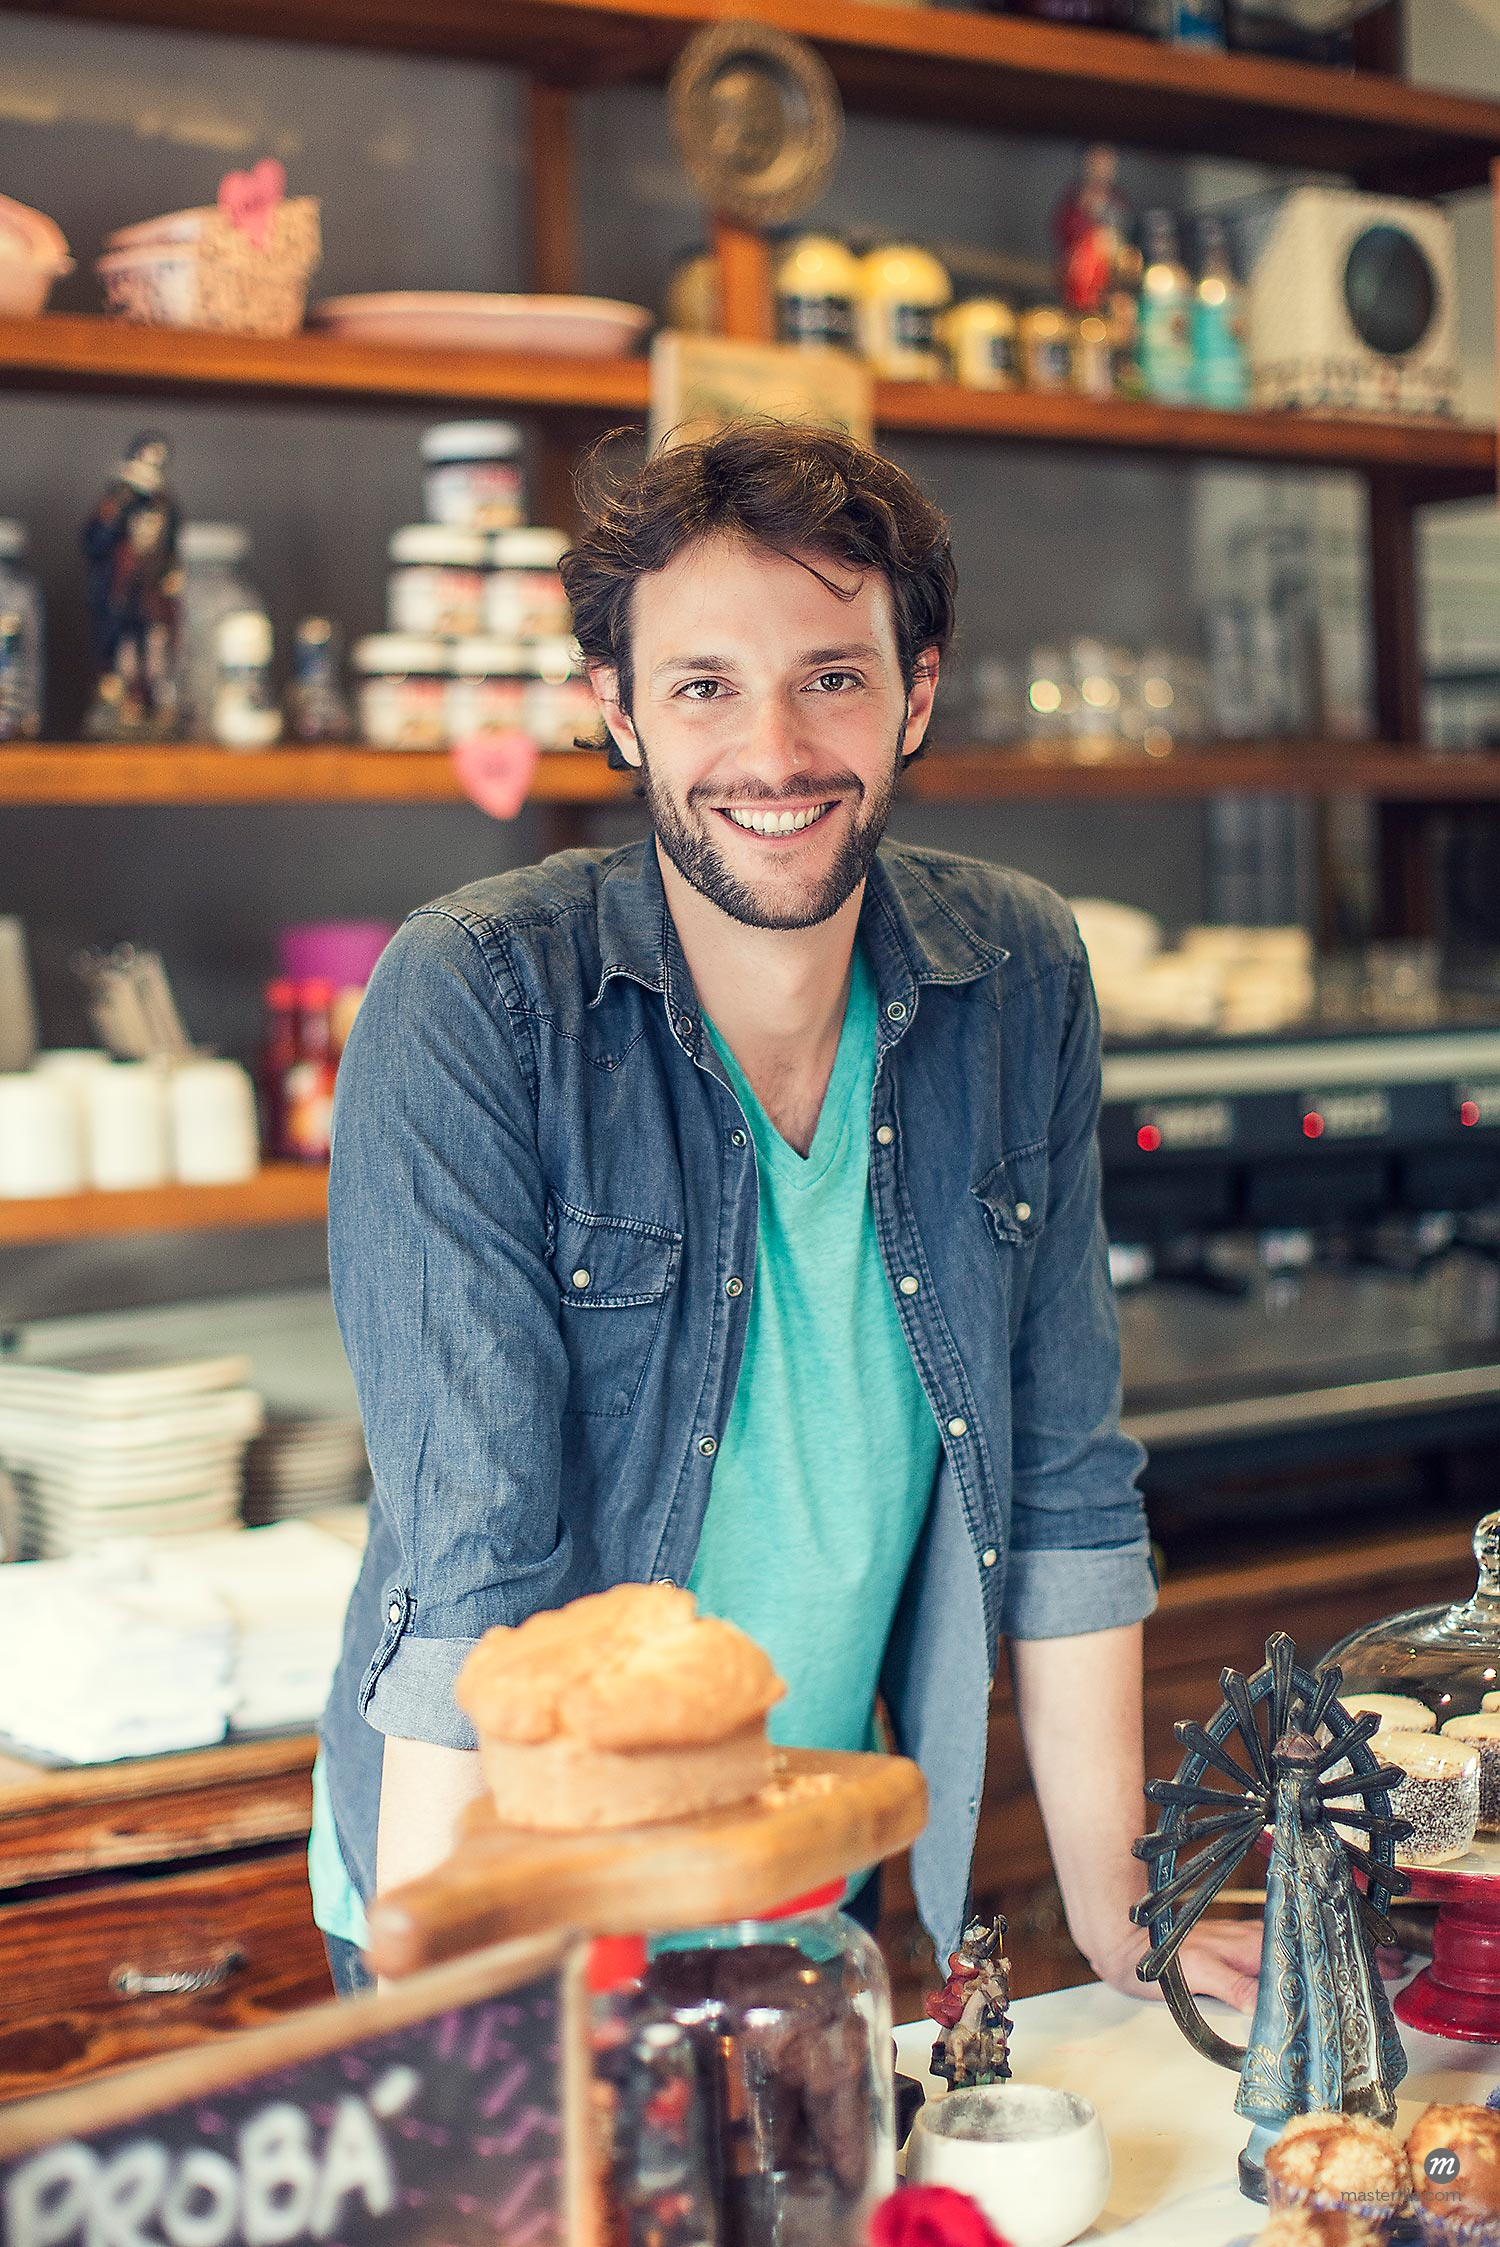 Coffee shop owner standing at counter with baked goods  © Masterfile